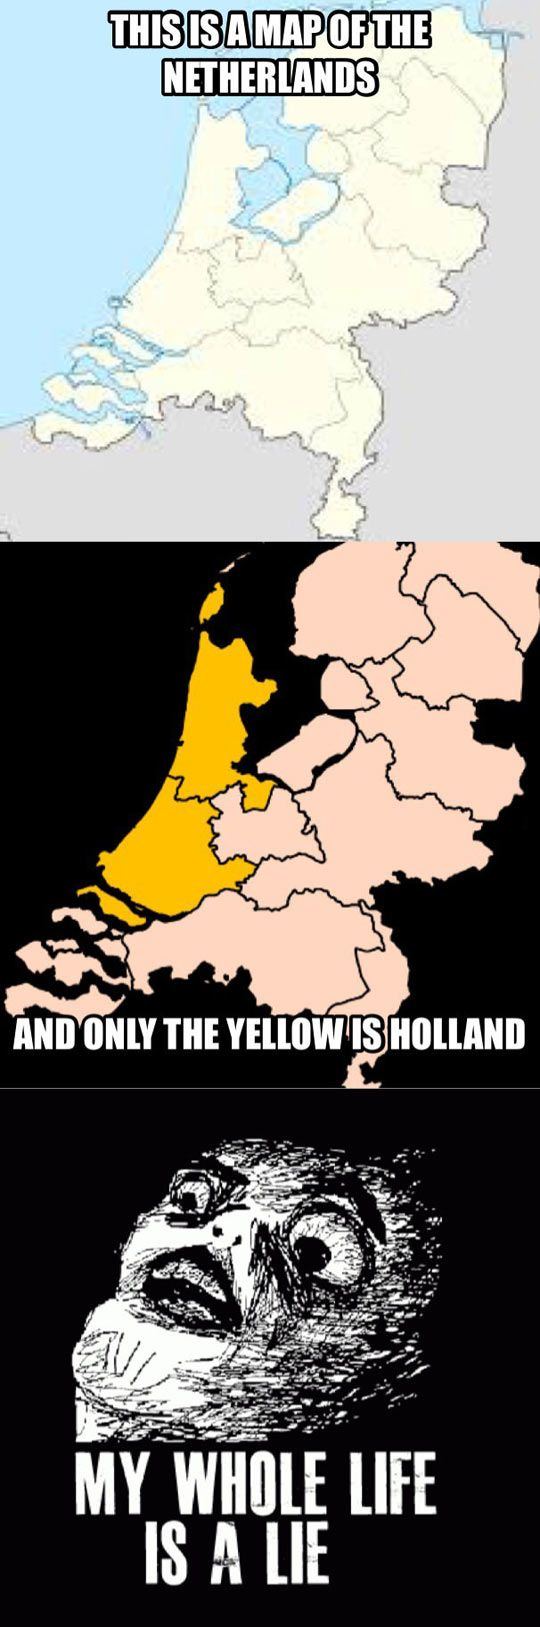 I knew cause i live in The Netherlands, AMD i am Dutch, and ITS SO annoying!